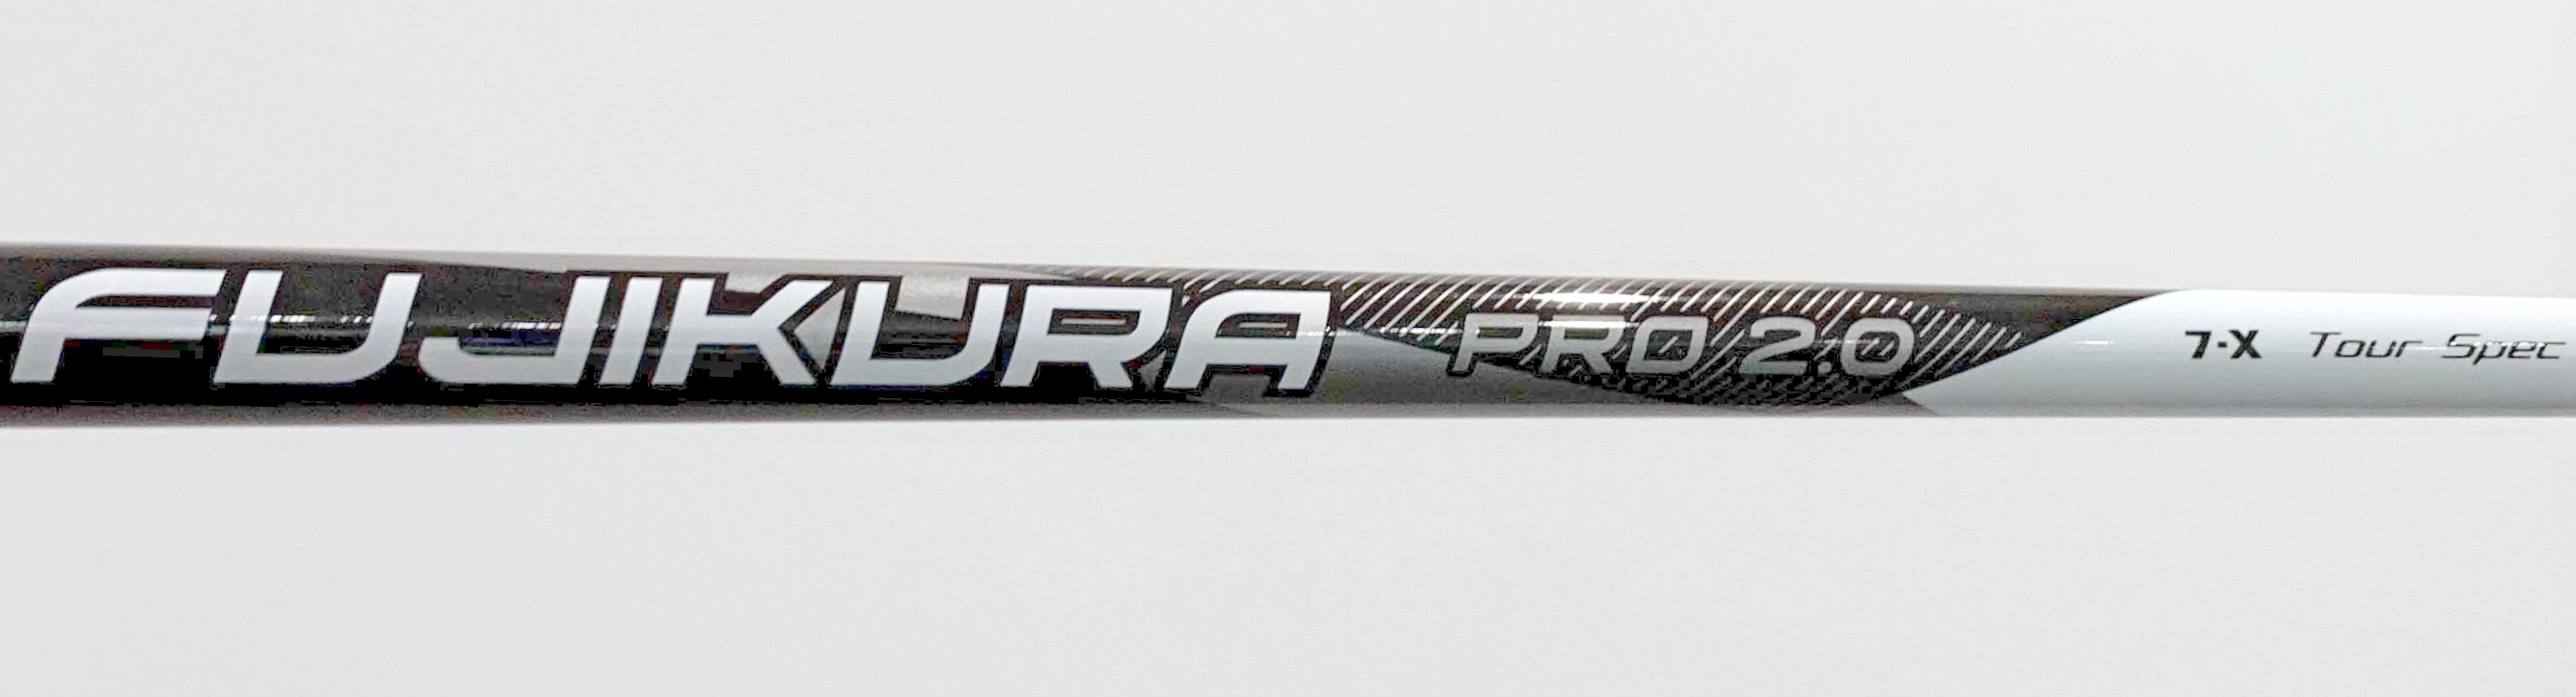 Fujikua Pro 2.0 Tour Spec Shaft